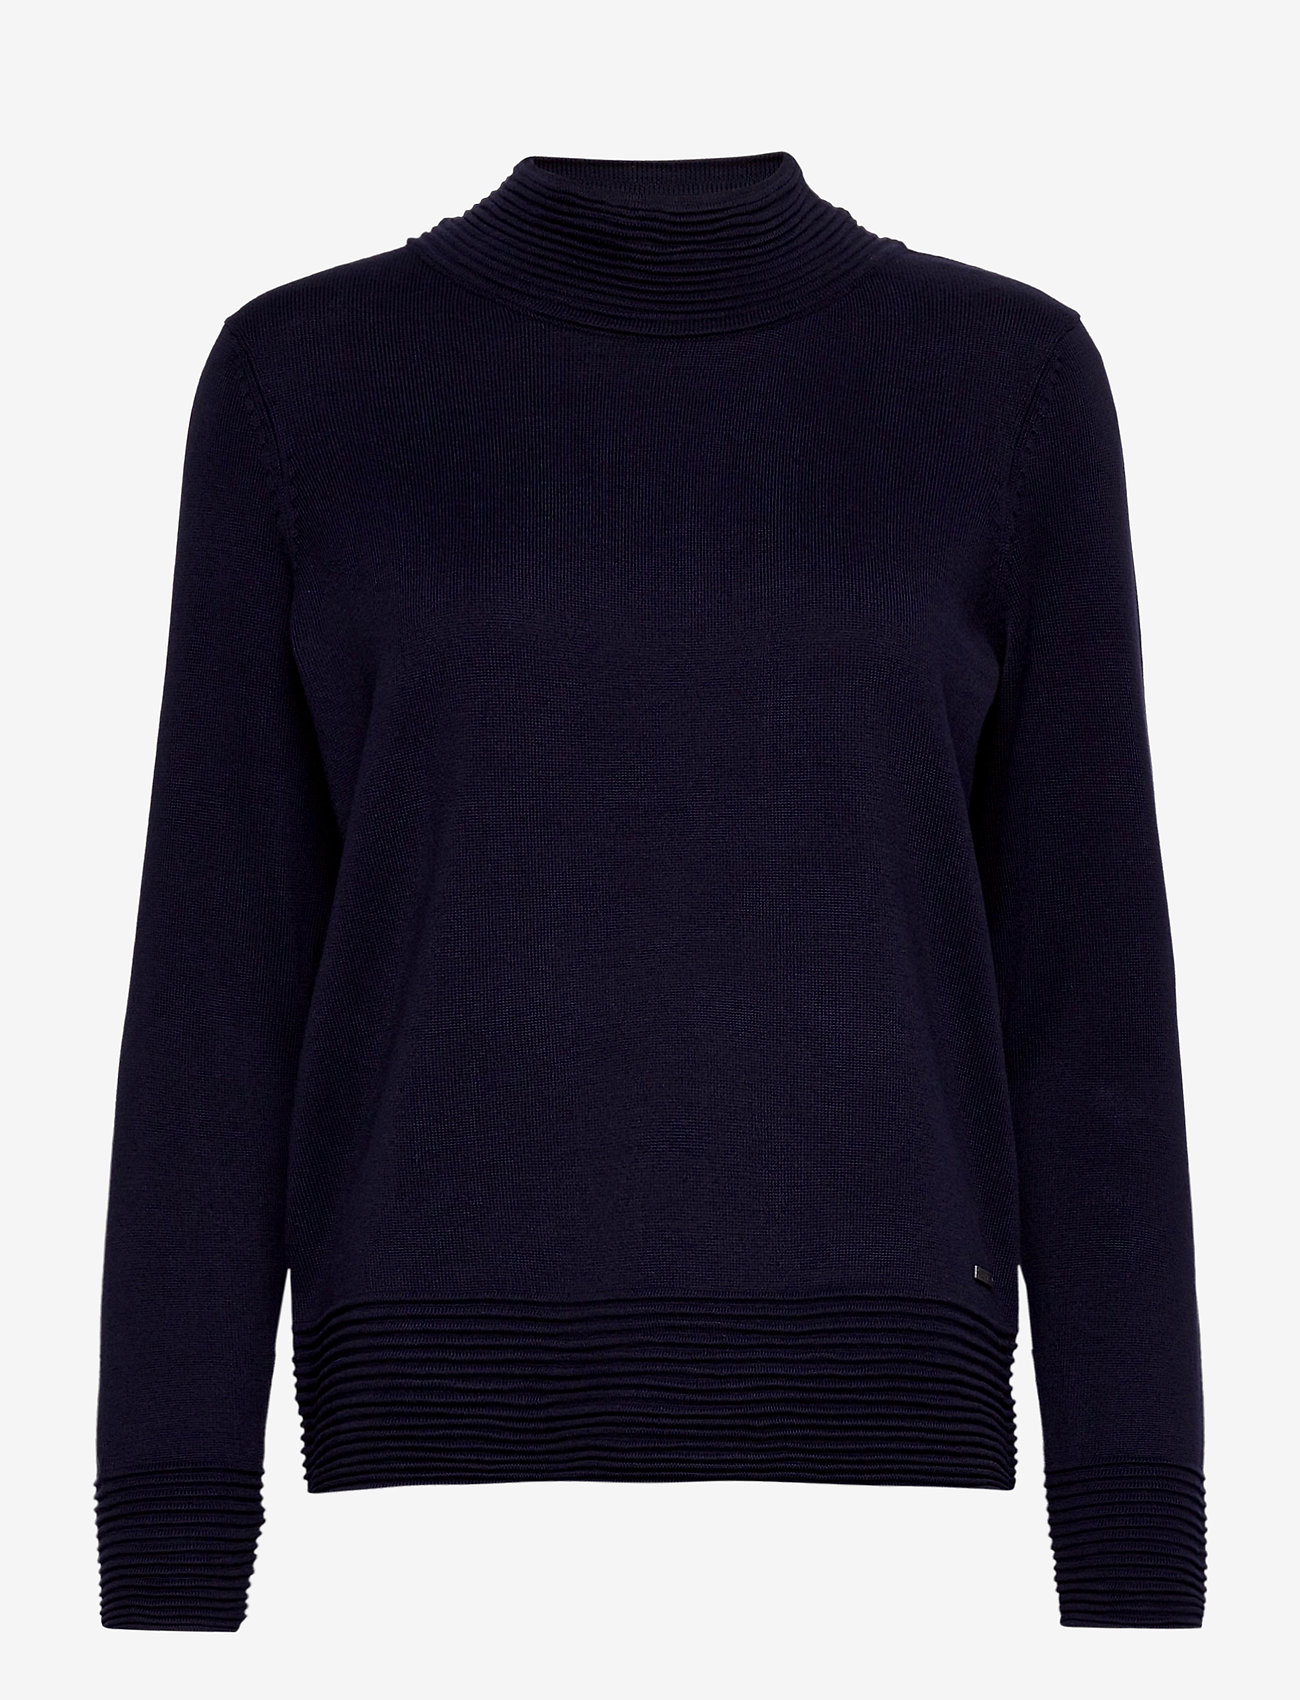 Esprit Casual - Sweaters - gensere - navy - 0